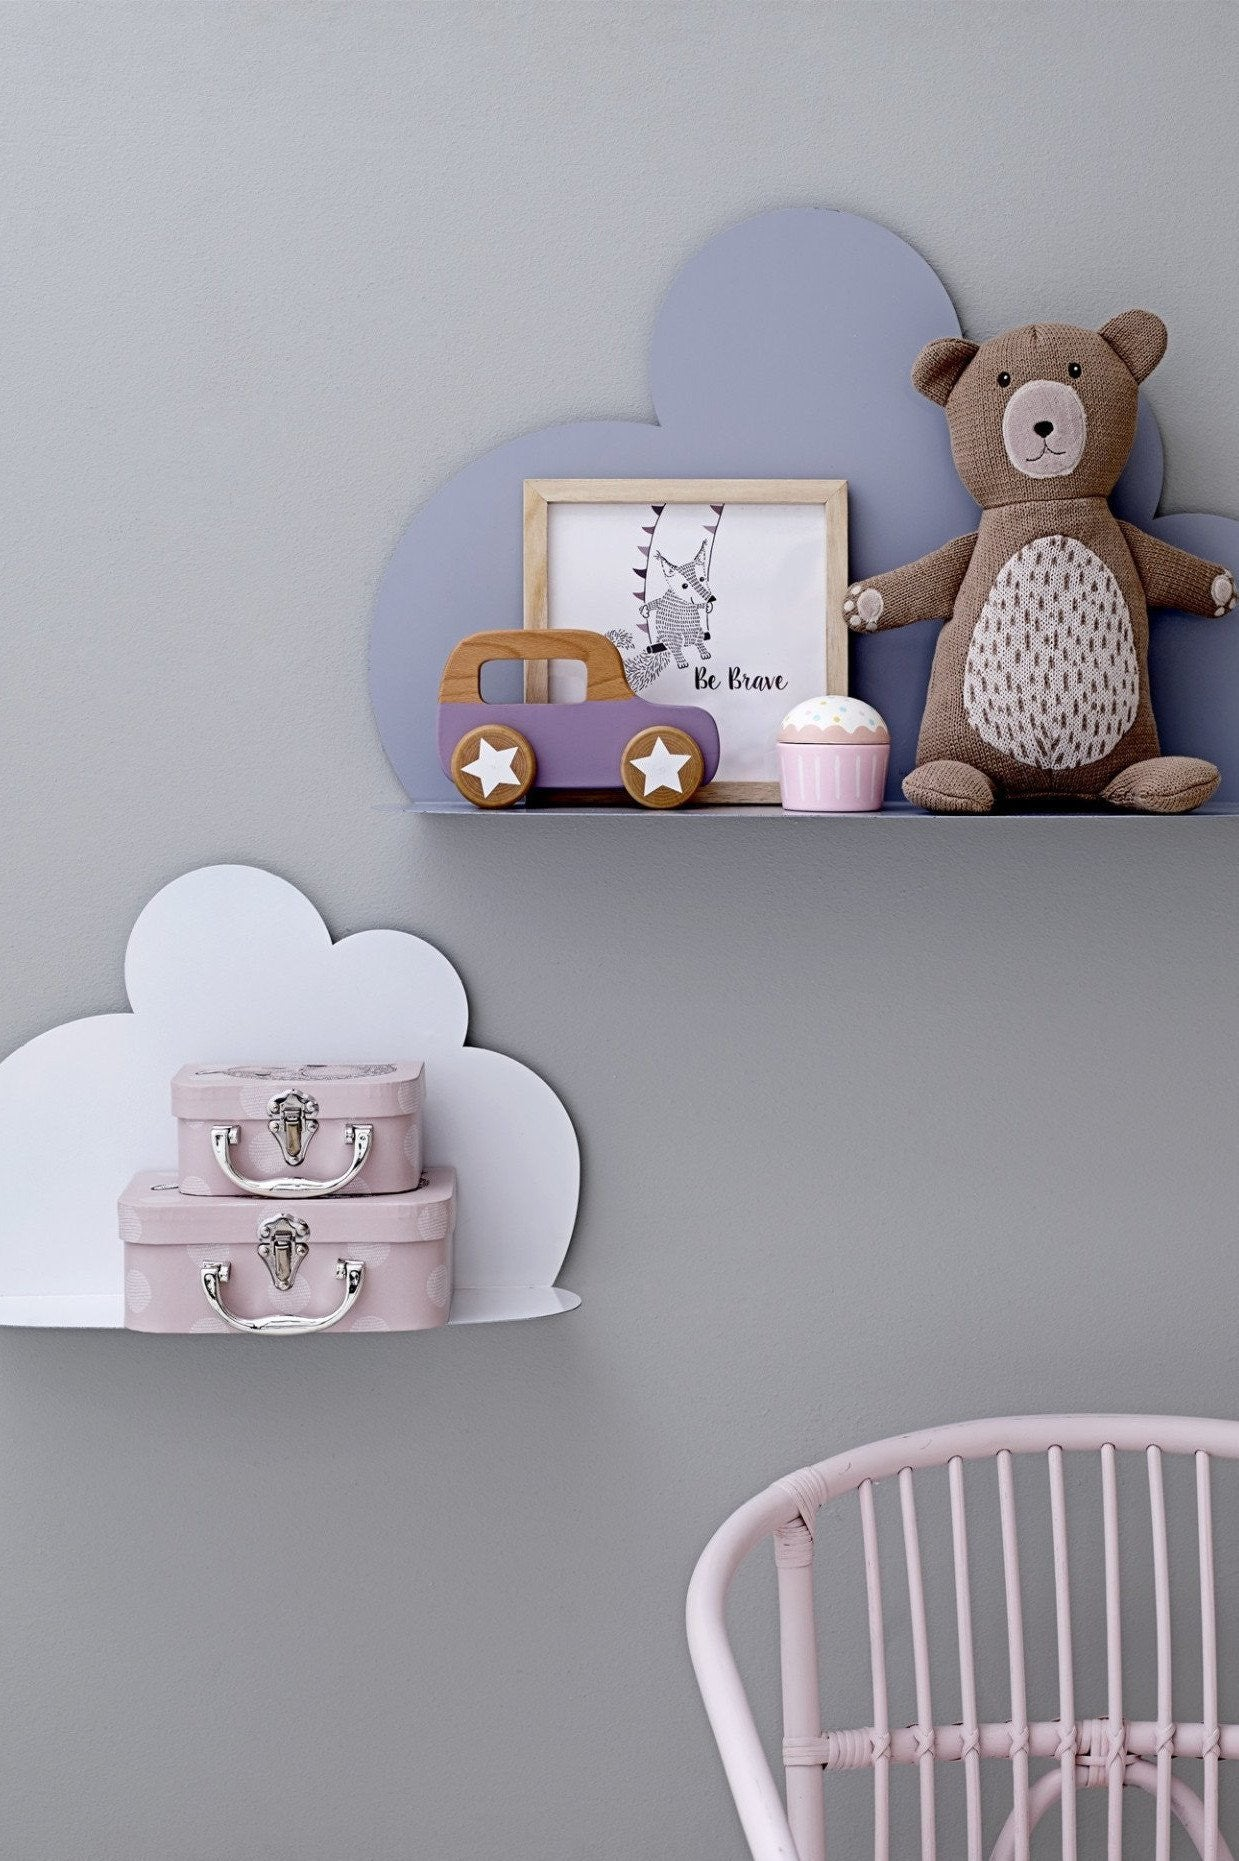 Puffy Cloud Shelf, Shelf, Bloomingville - 3LittlePicks